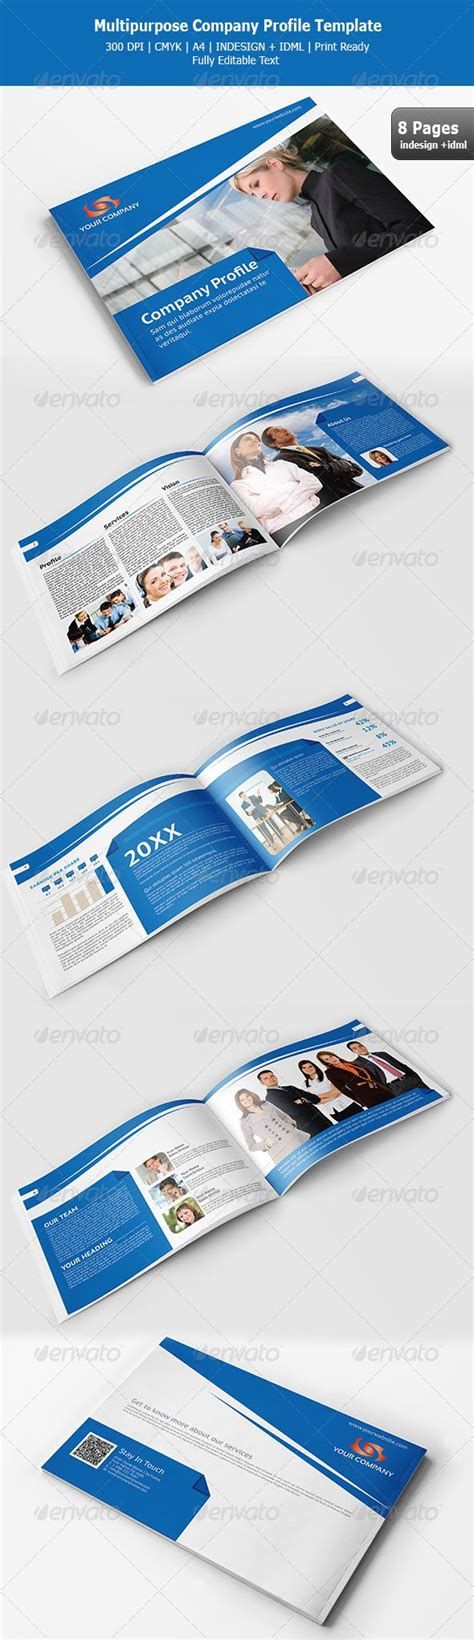 design consultancy company profile 31 best company profile templates images on pinterest